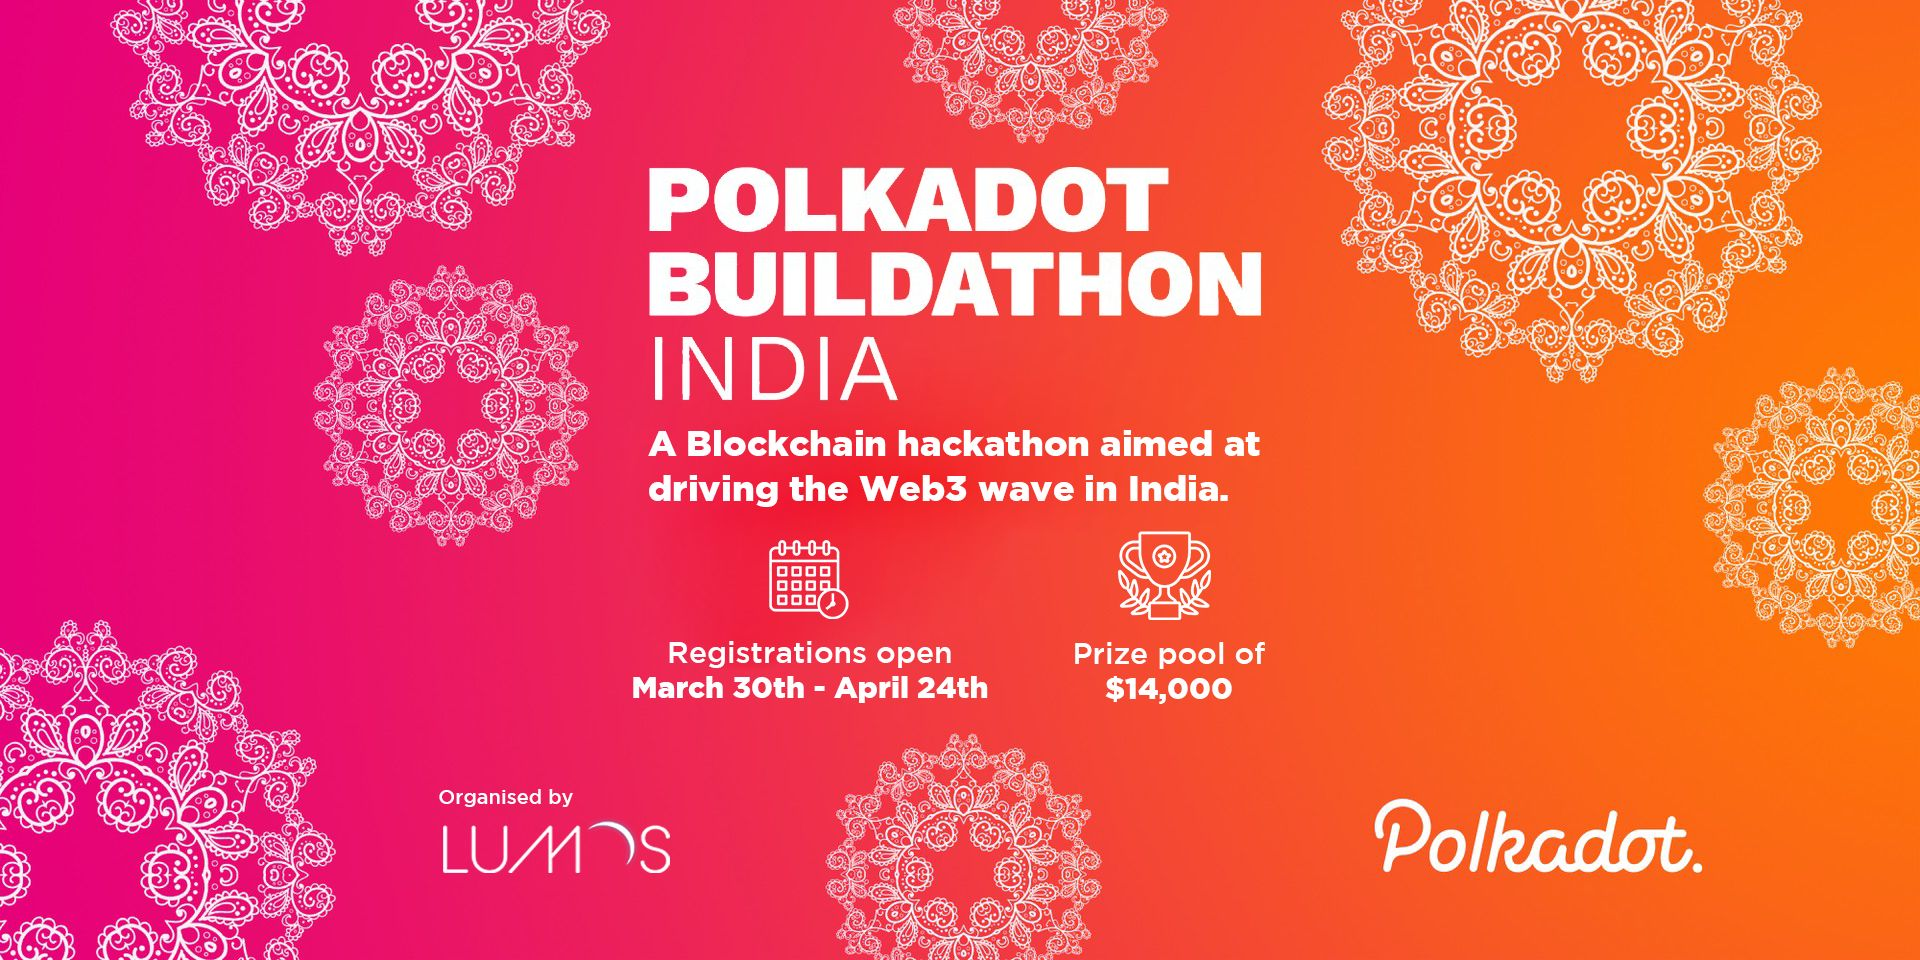 /web3-foundation-arrives-in-india-with-a-polkadot-buildathon-tk2z337w feature image